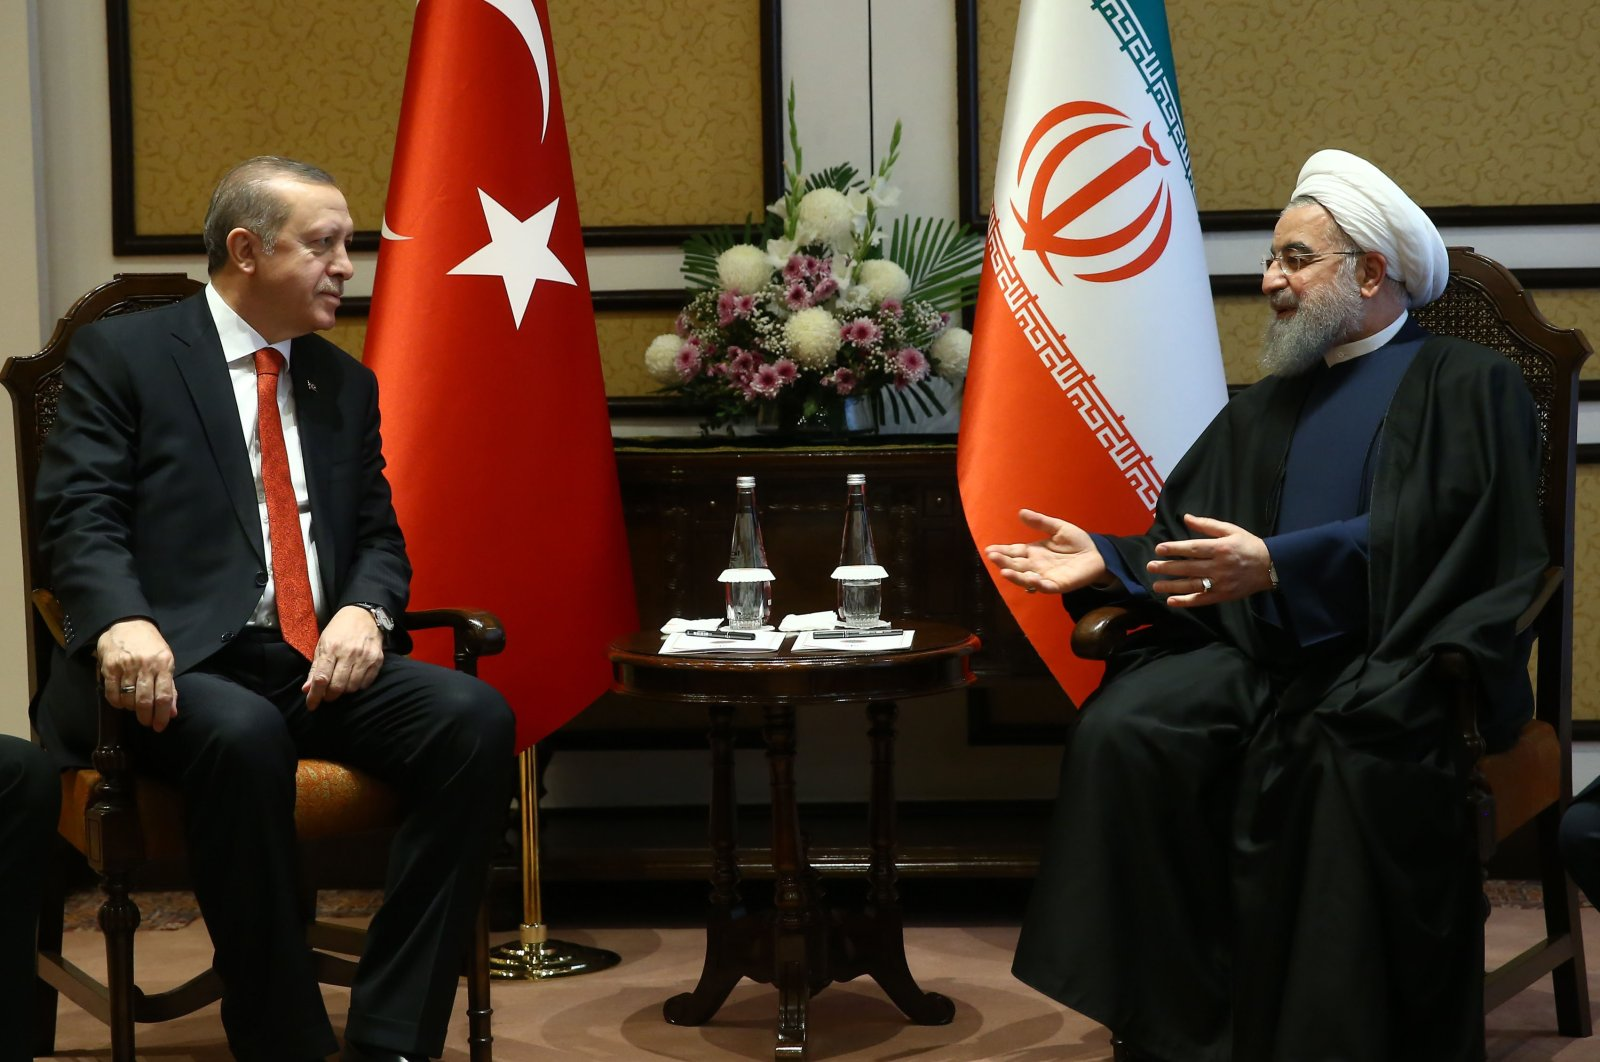 President Recep Tayyip Erdoğan and his Iranian counterpart Hassan Rouhani speak during a meeting in Ankara, Turkey, March 1, 2017. (Courtesy of the Turkish Presidency)